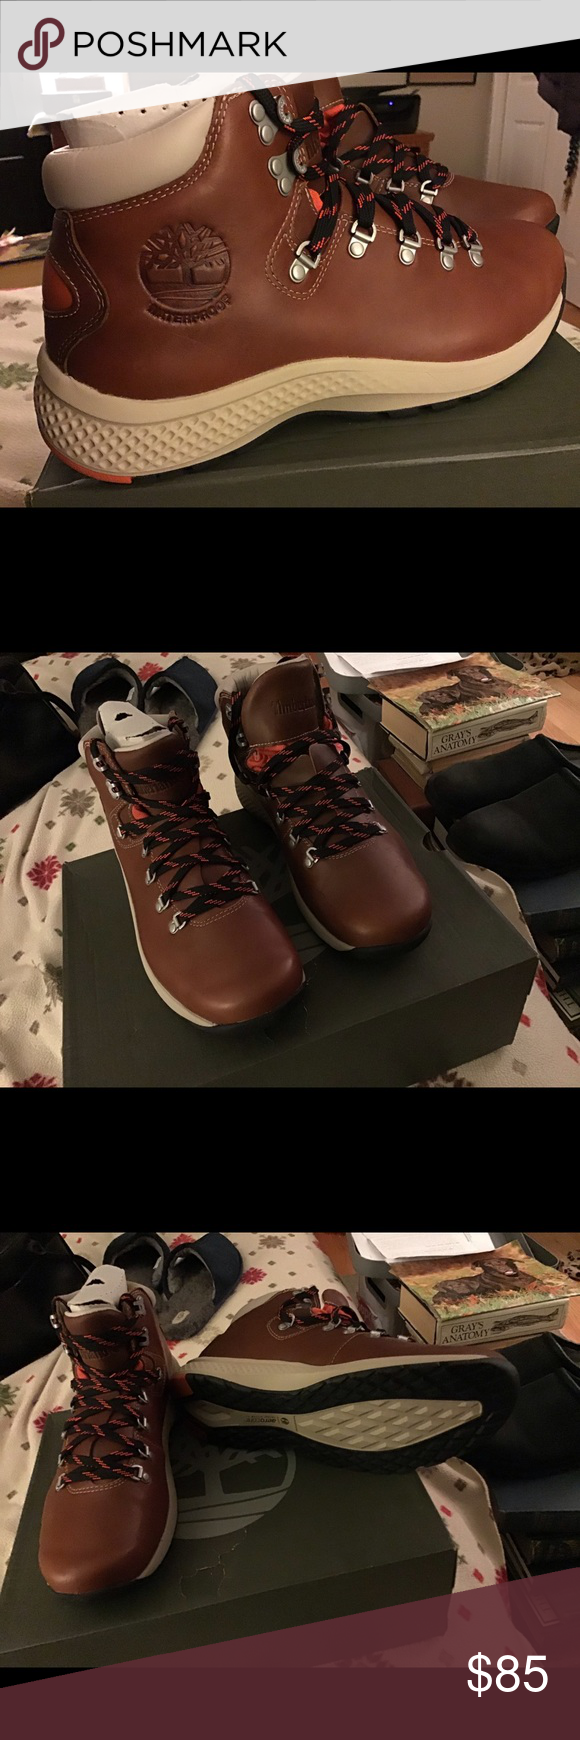 NWT Timberland hiking boots. Size men's 11. New men's